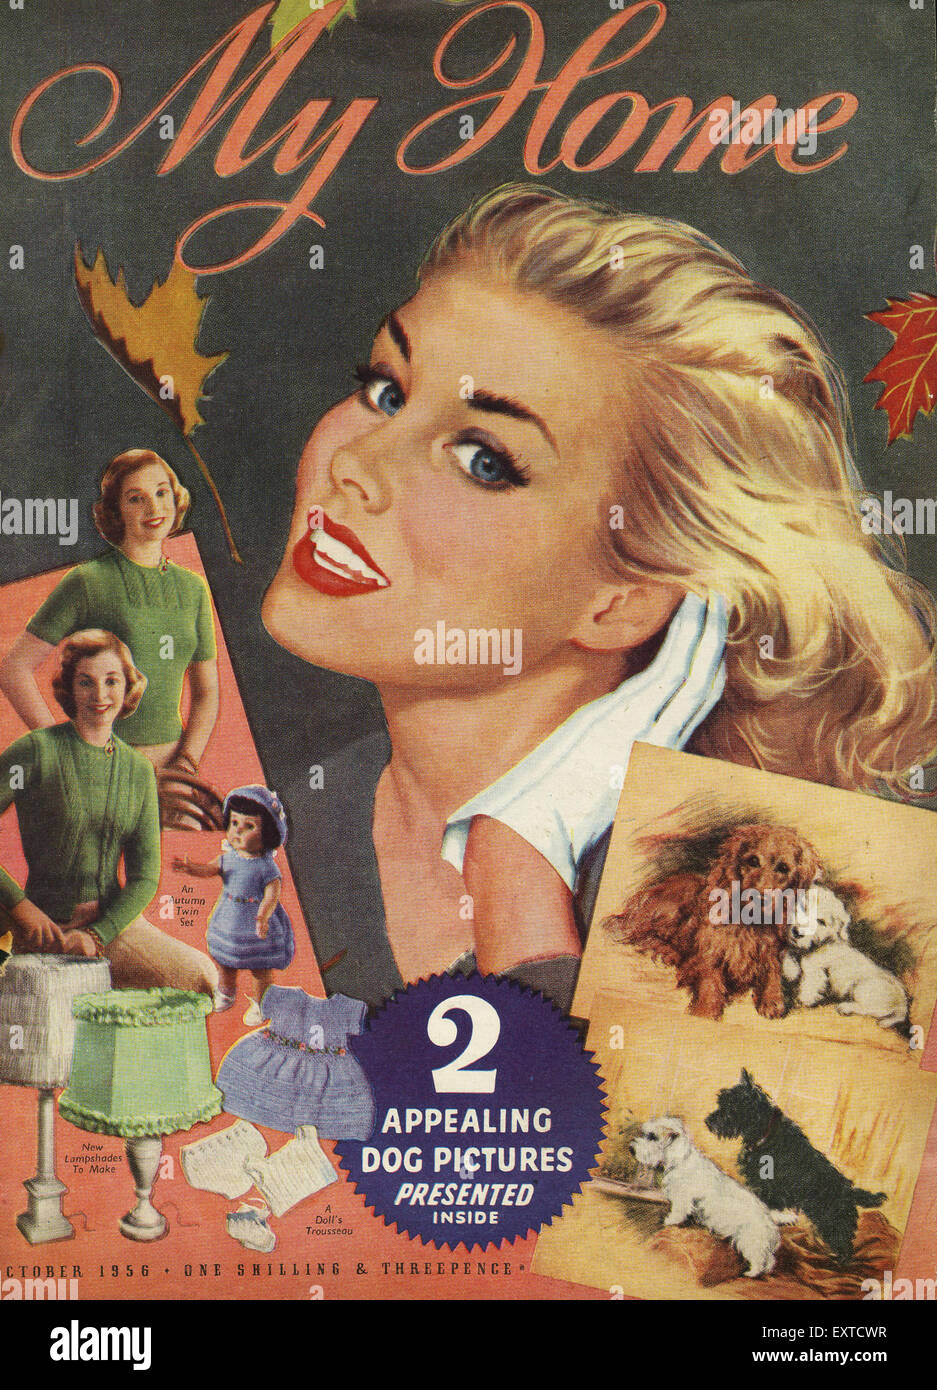 Home Magazines Usa 1950s usa my home magazine cover stock photo, royalty free image